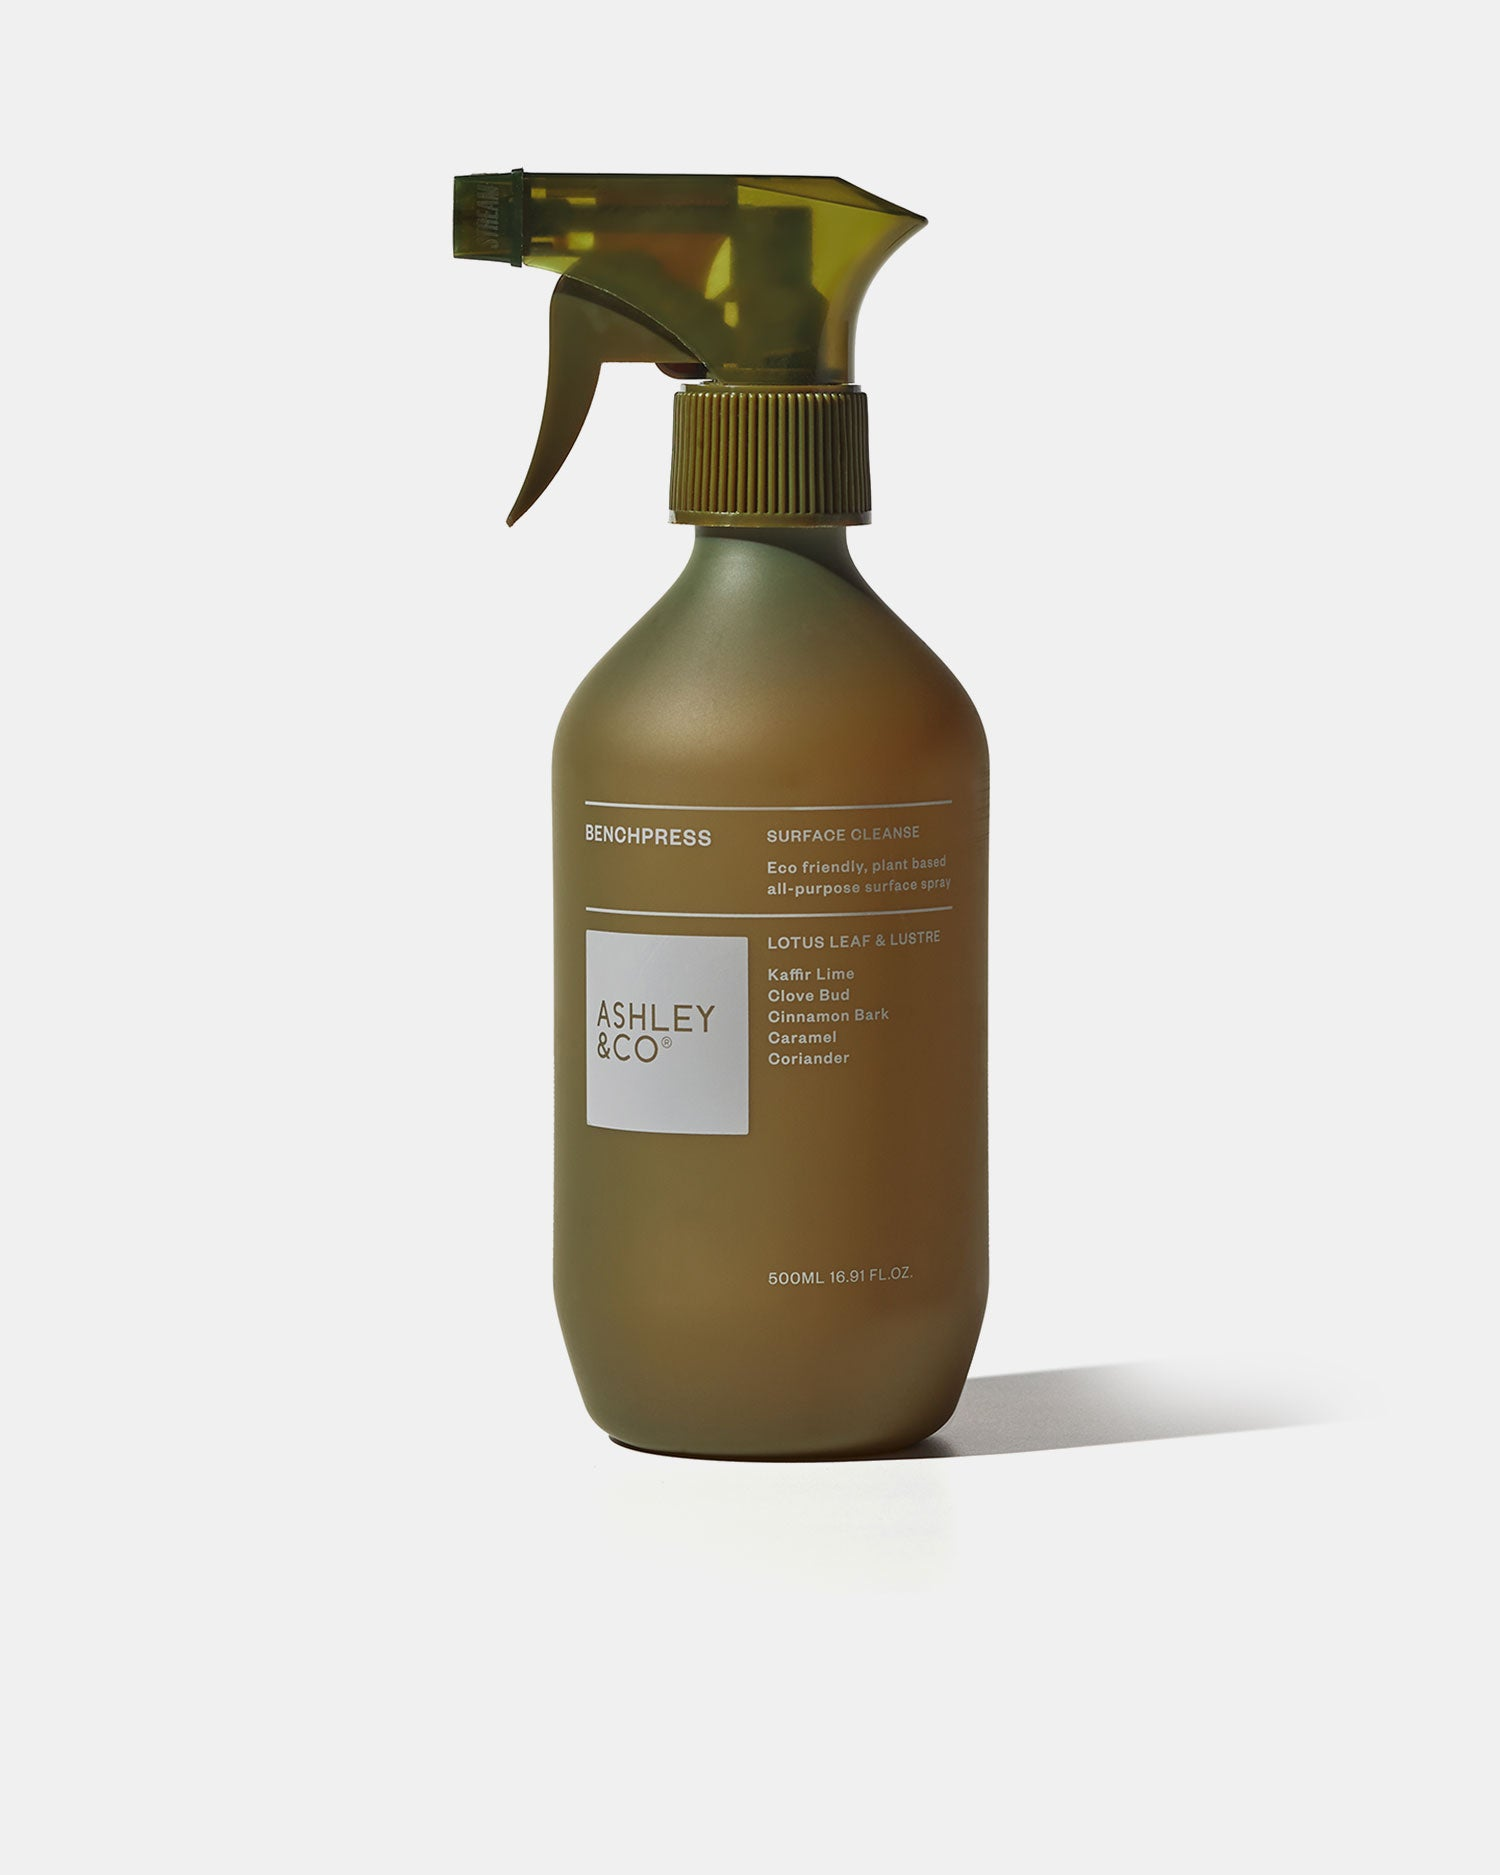 Ashley & Co Surface Cleaner